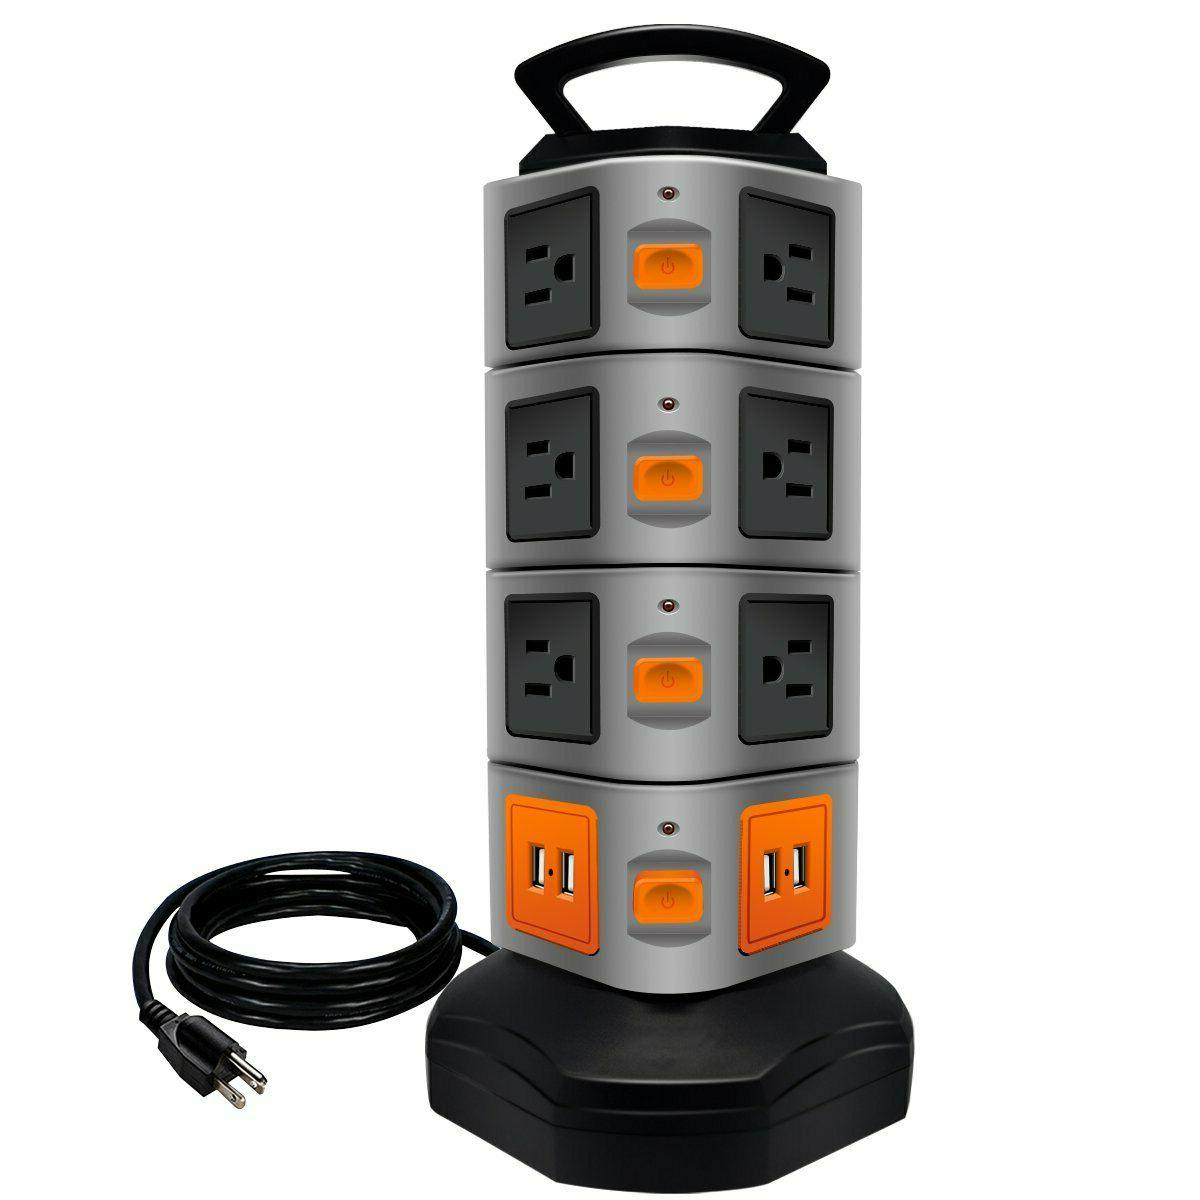 powerstrip tower surge protector electric charging station